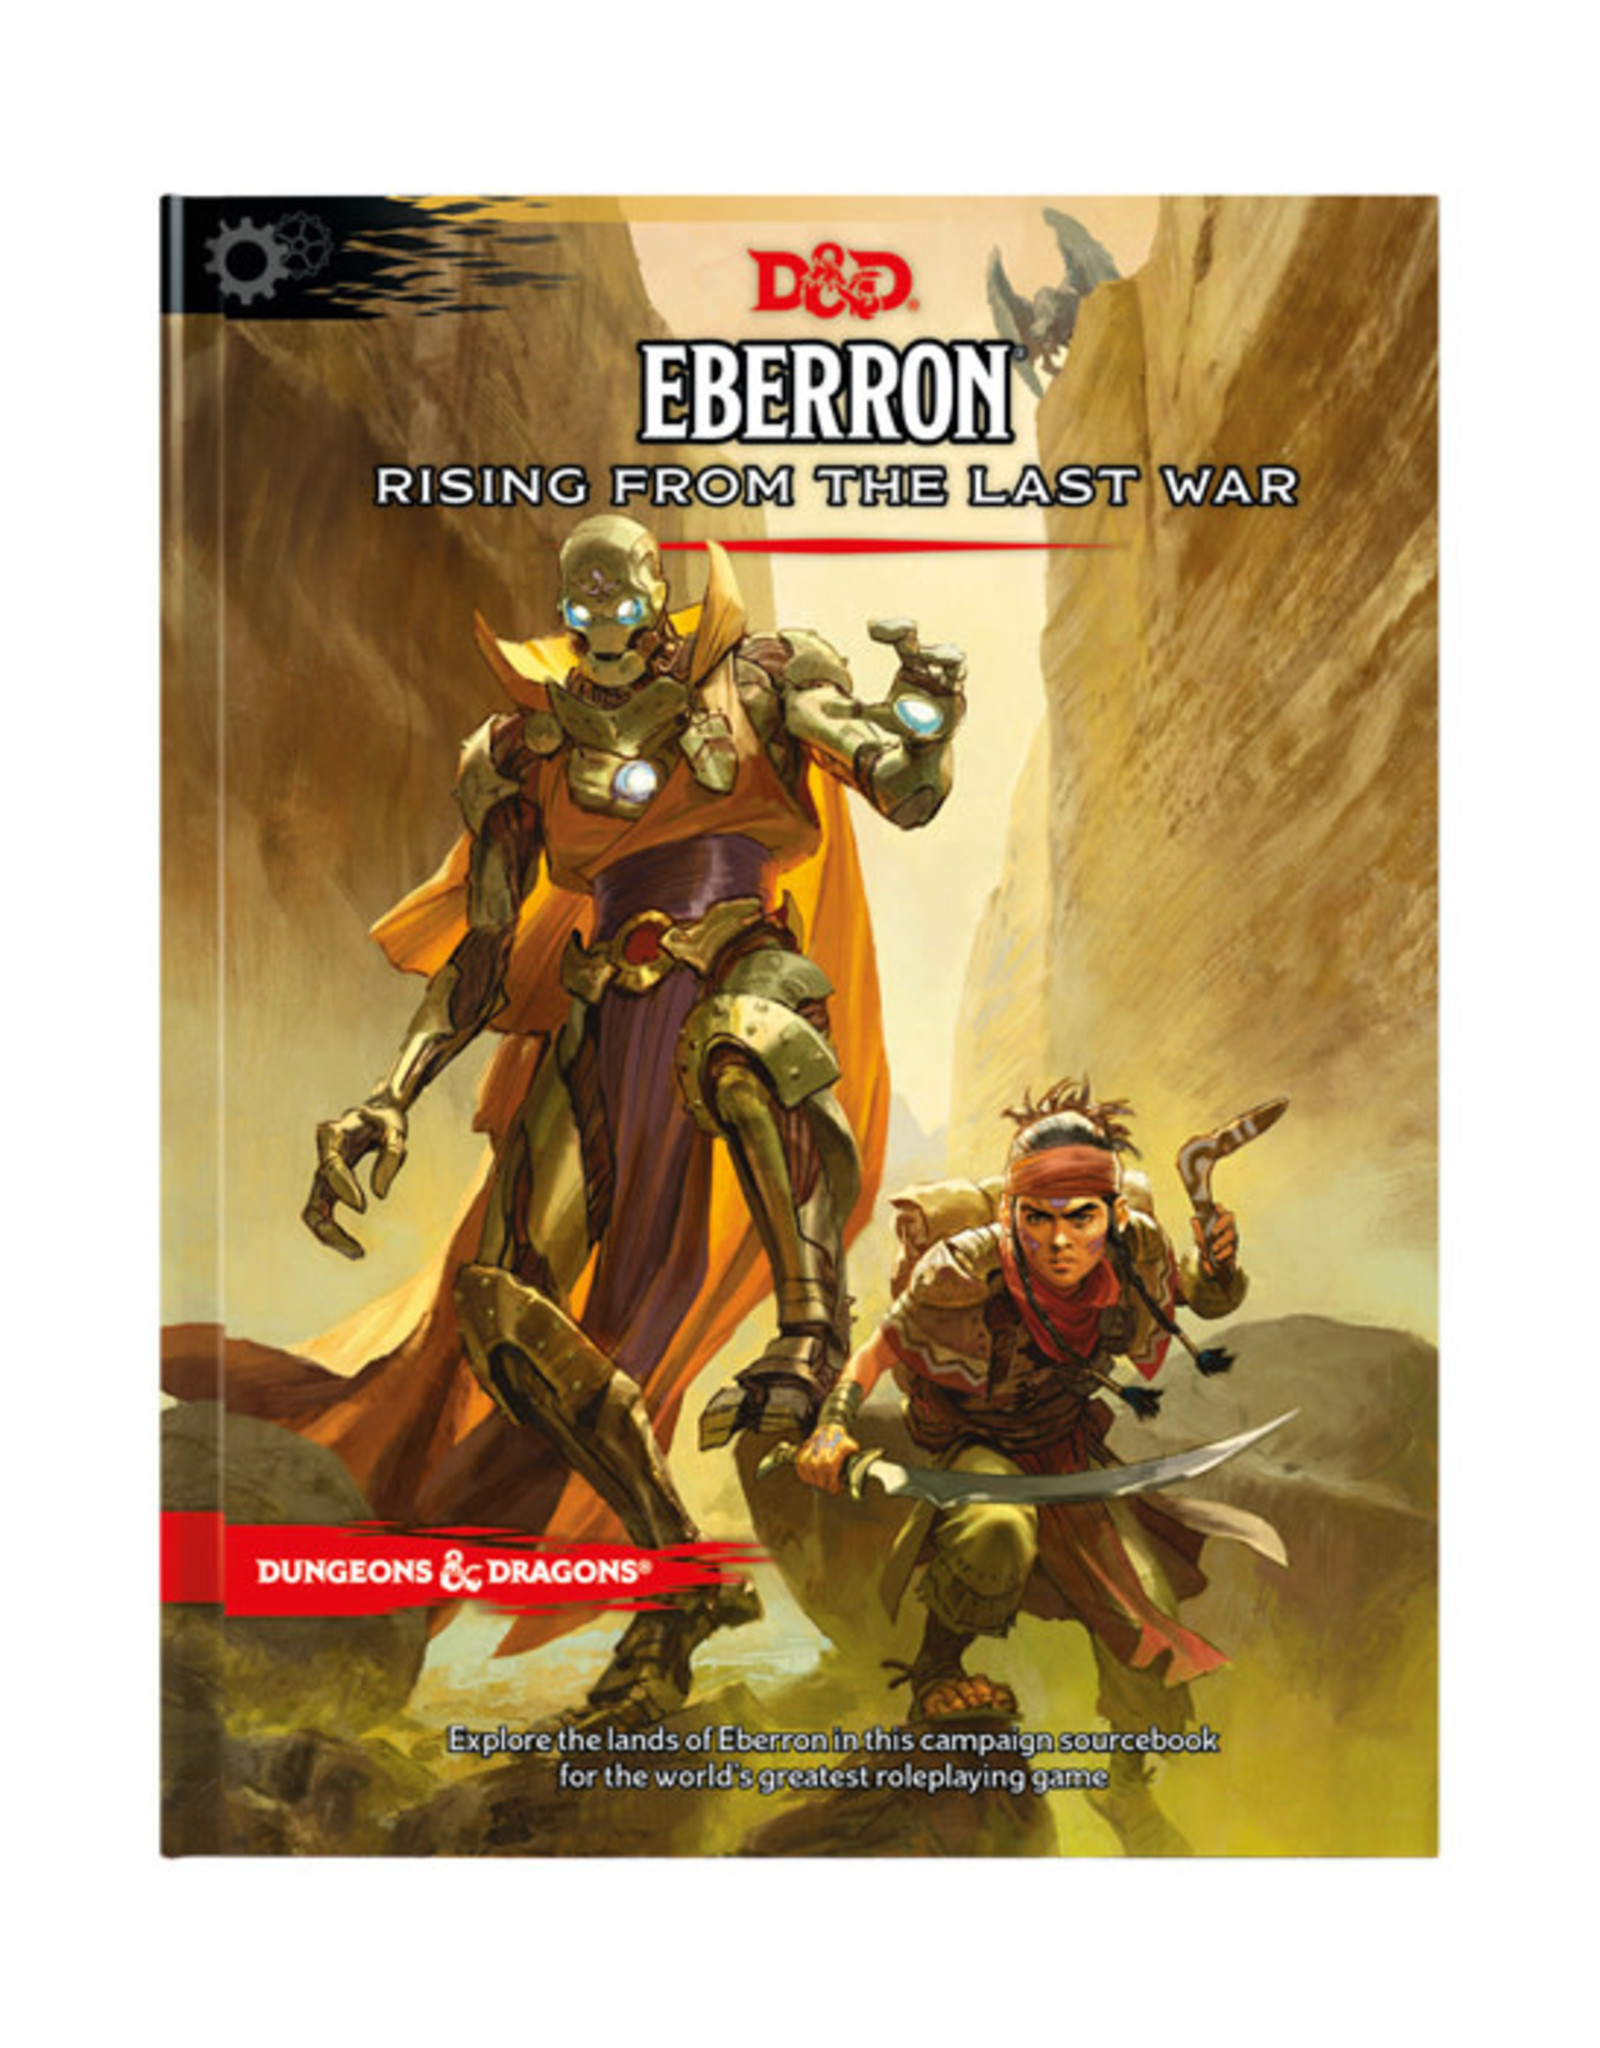 Dungeons & Dragons Dungeons & Dragons: 5th Edition - Eberron - Rising from the Last War